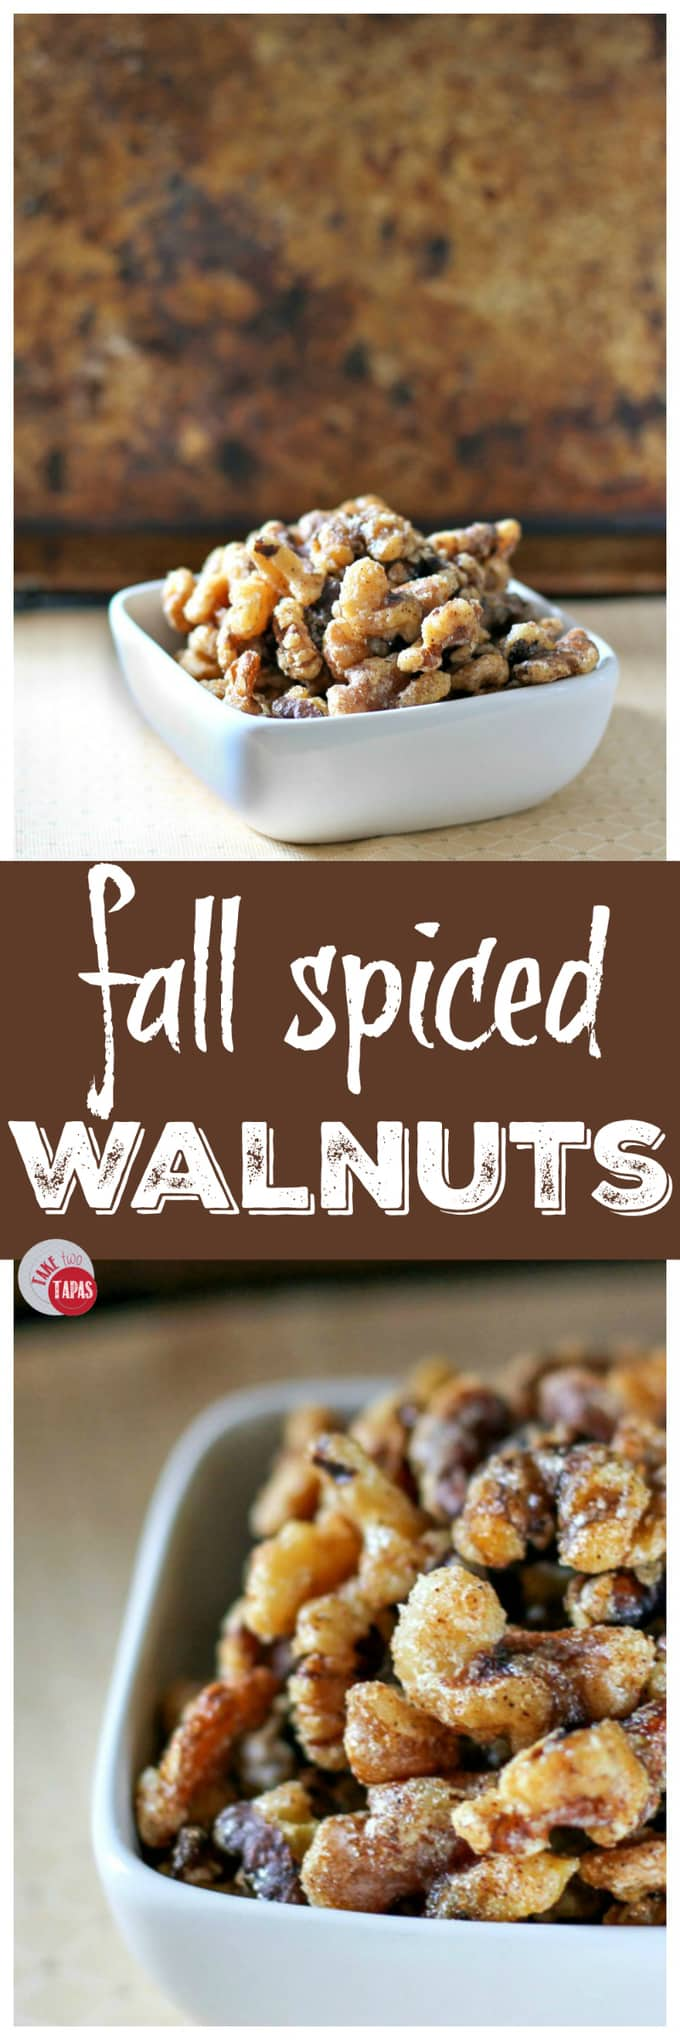 Fall Spiced Walnuts | Take Two Tapas